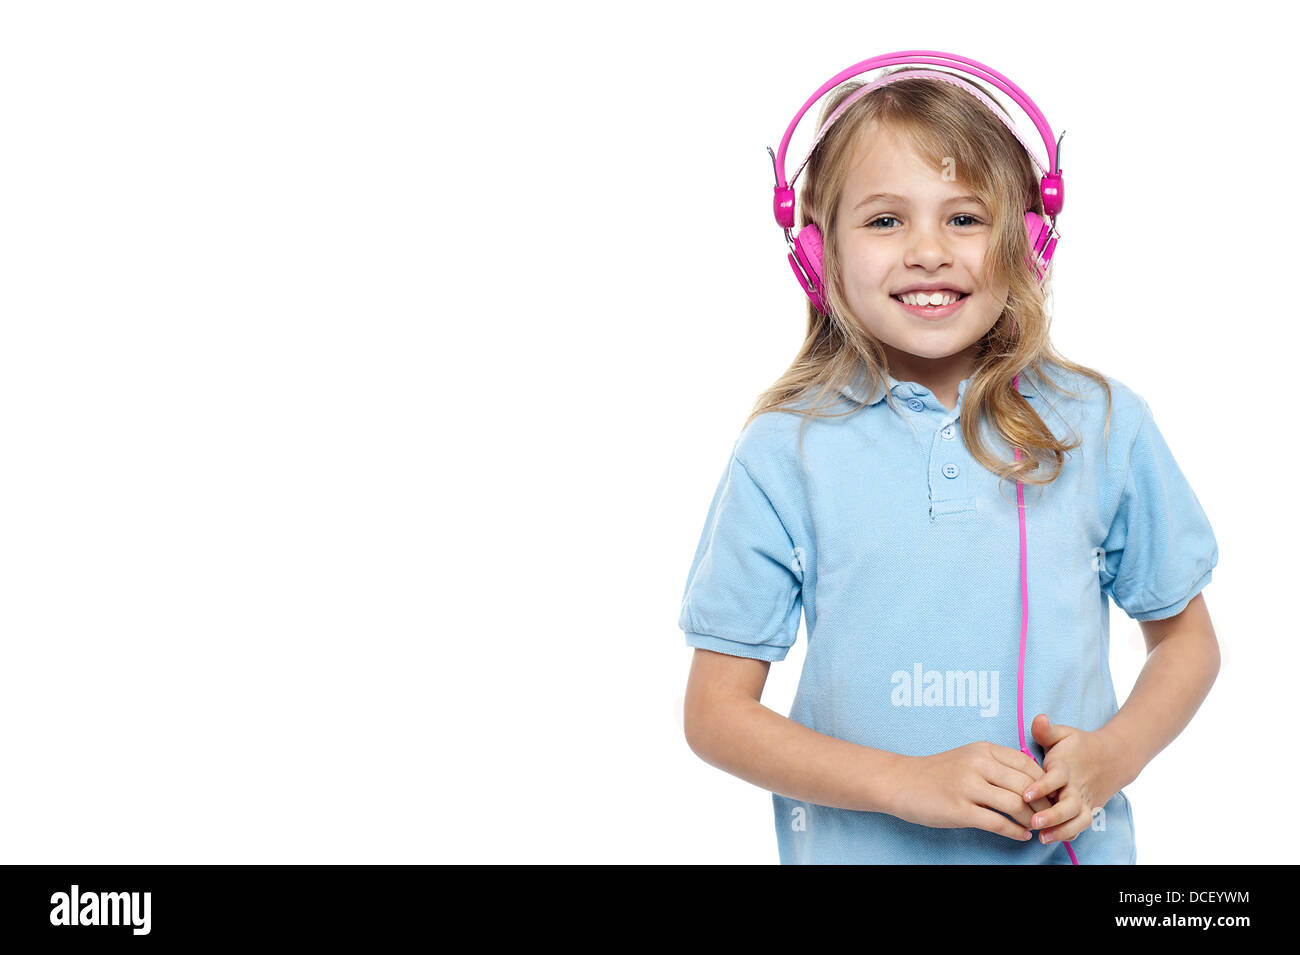 Half length portrait of a sweet little girl with headphones on. All on white. - Stock Image